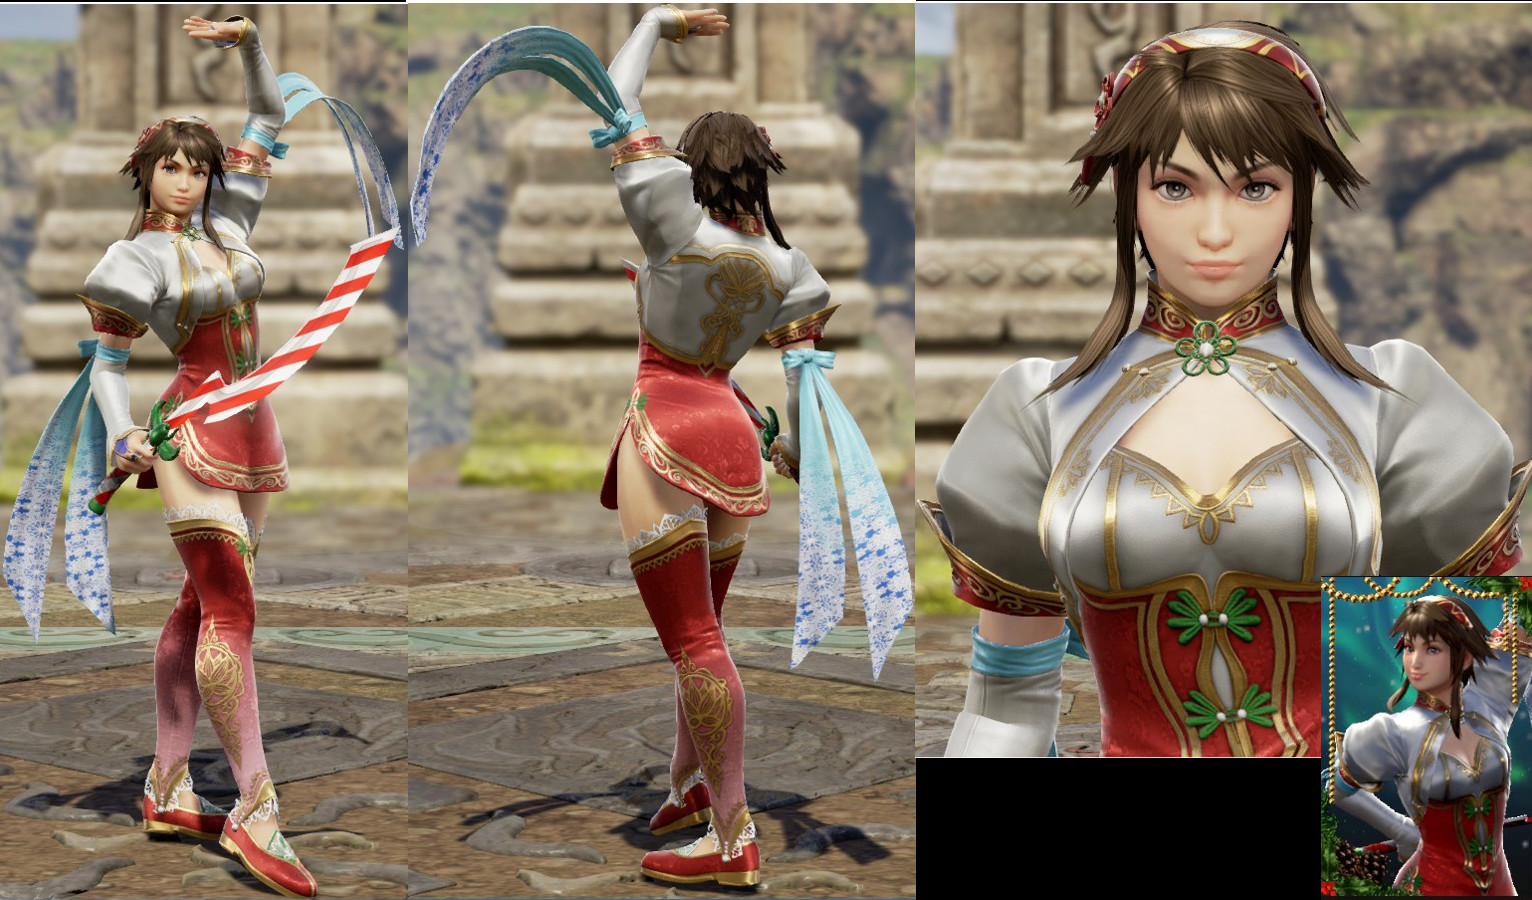 Xianghua Christmas edited 122718.jpg